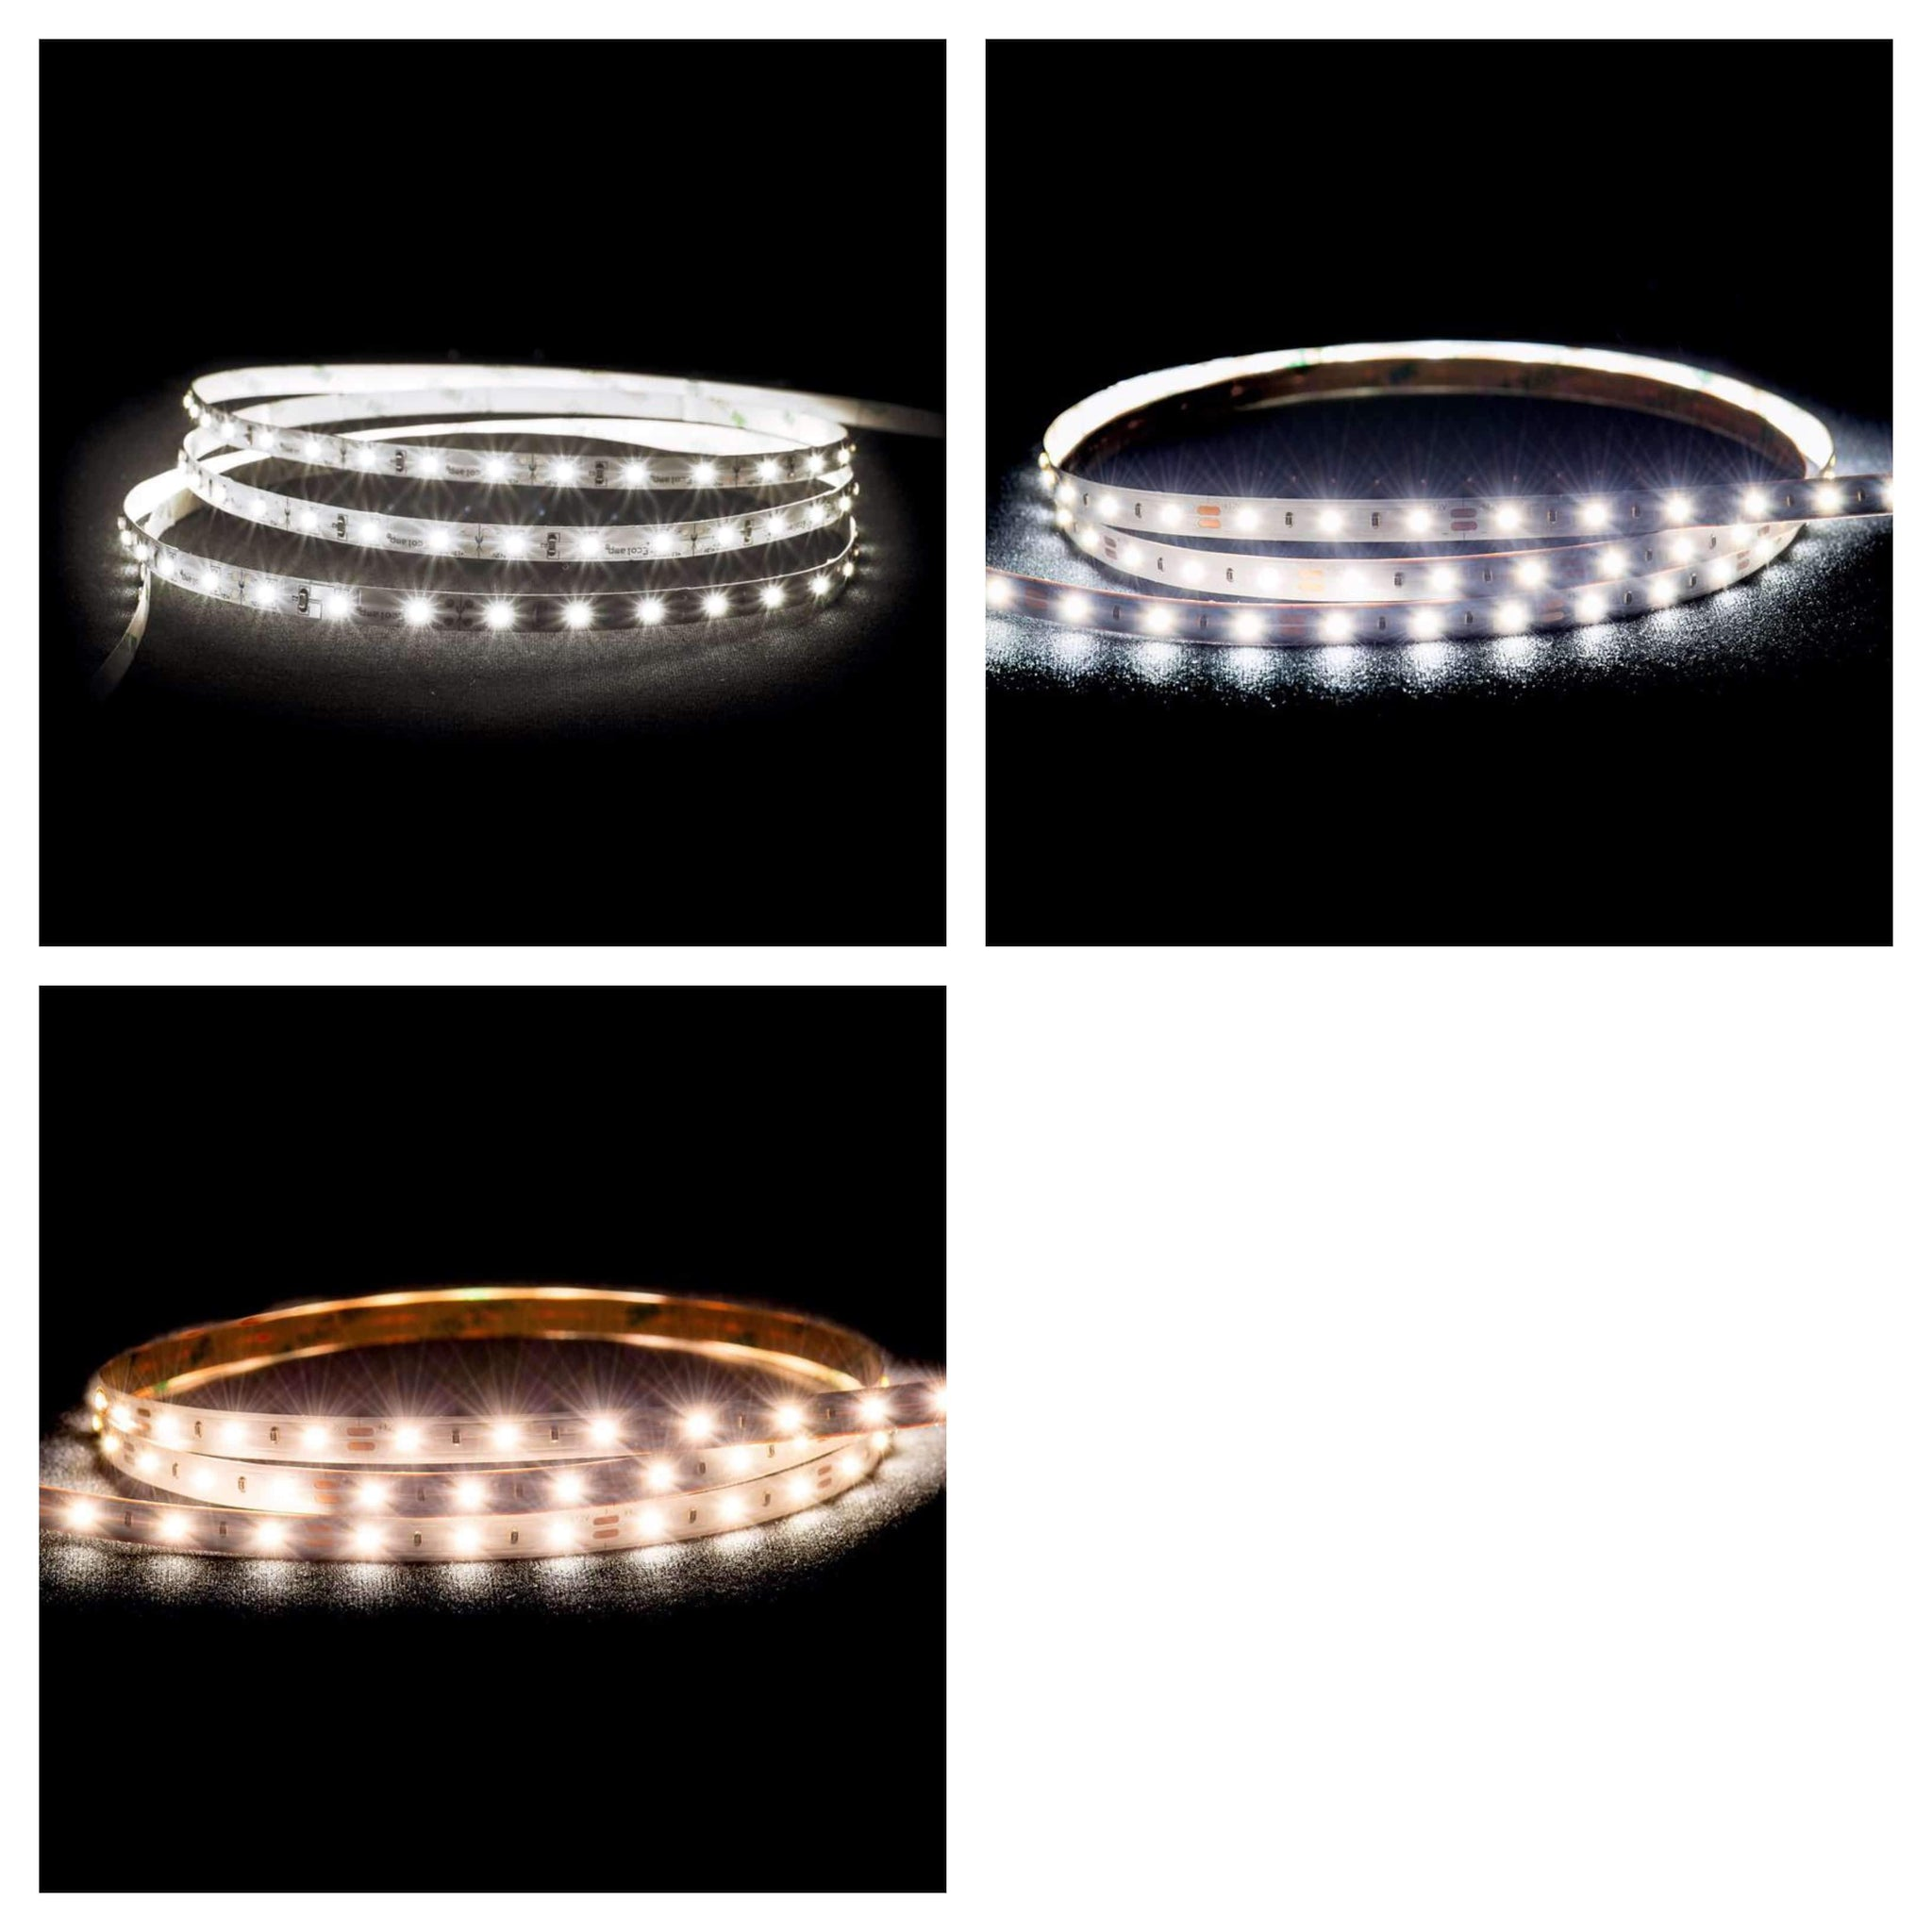 LED Strips 50m Rolls LED Strip - IP20 lighting shops lighting stores LED lights  lighting designer